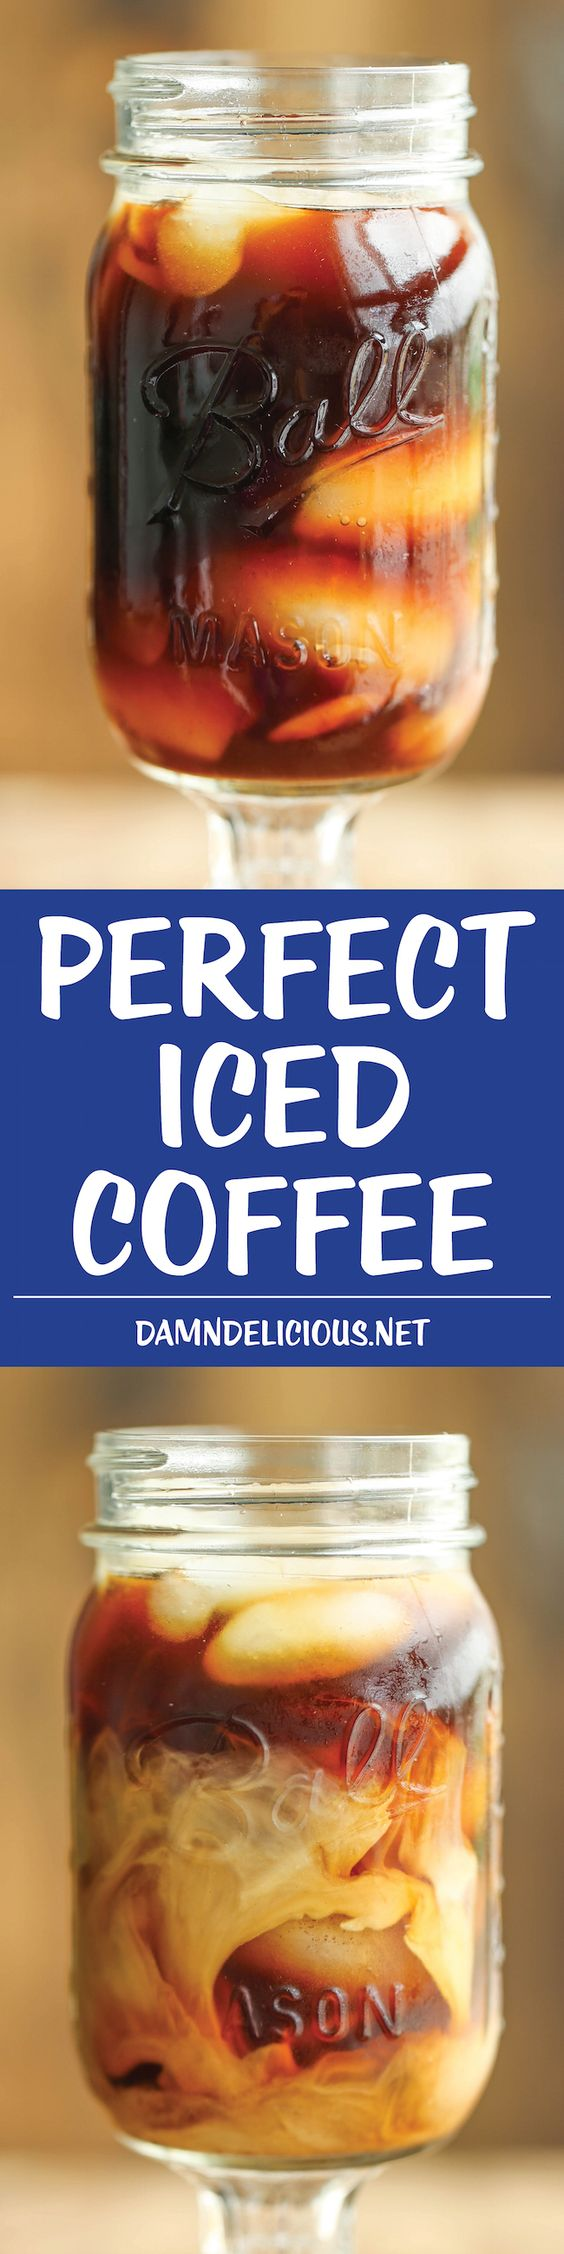 Iced coffee, Coffee and Recipe on Pinterest